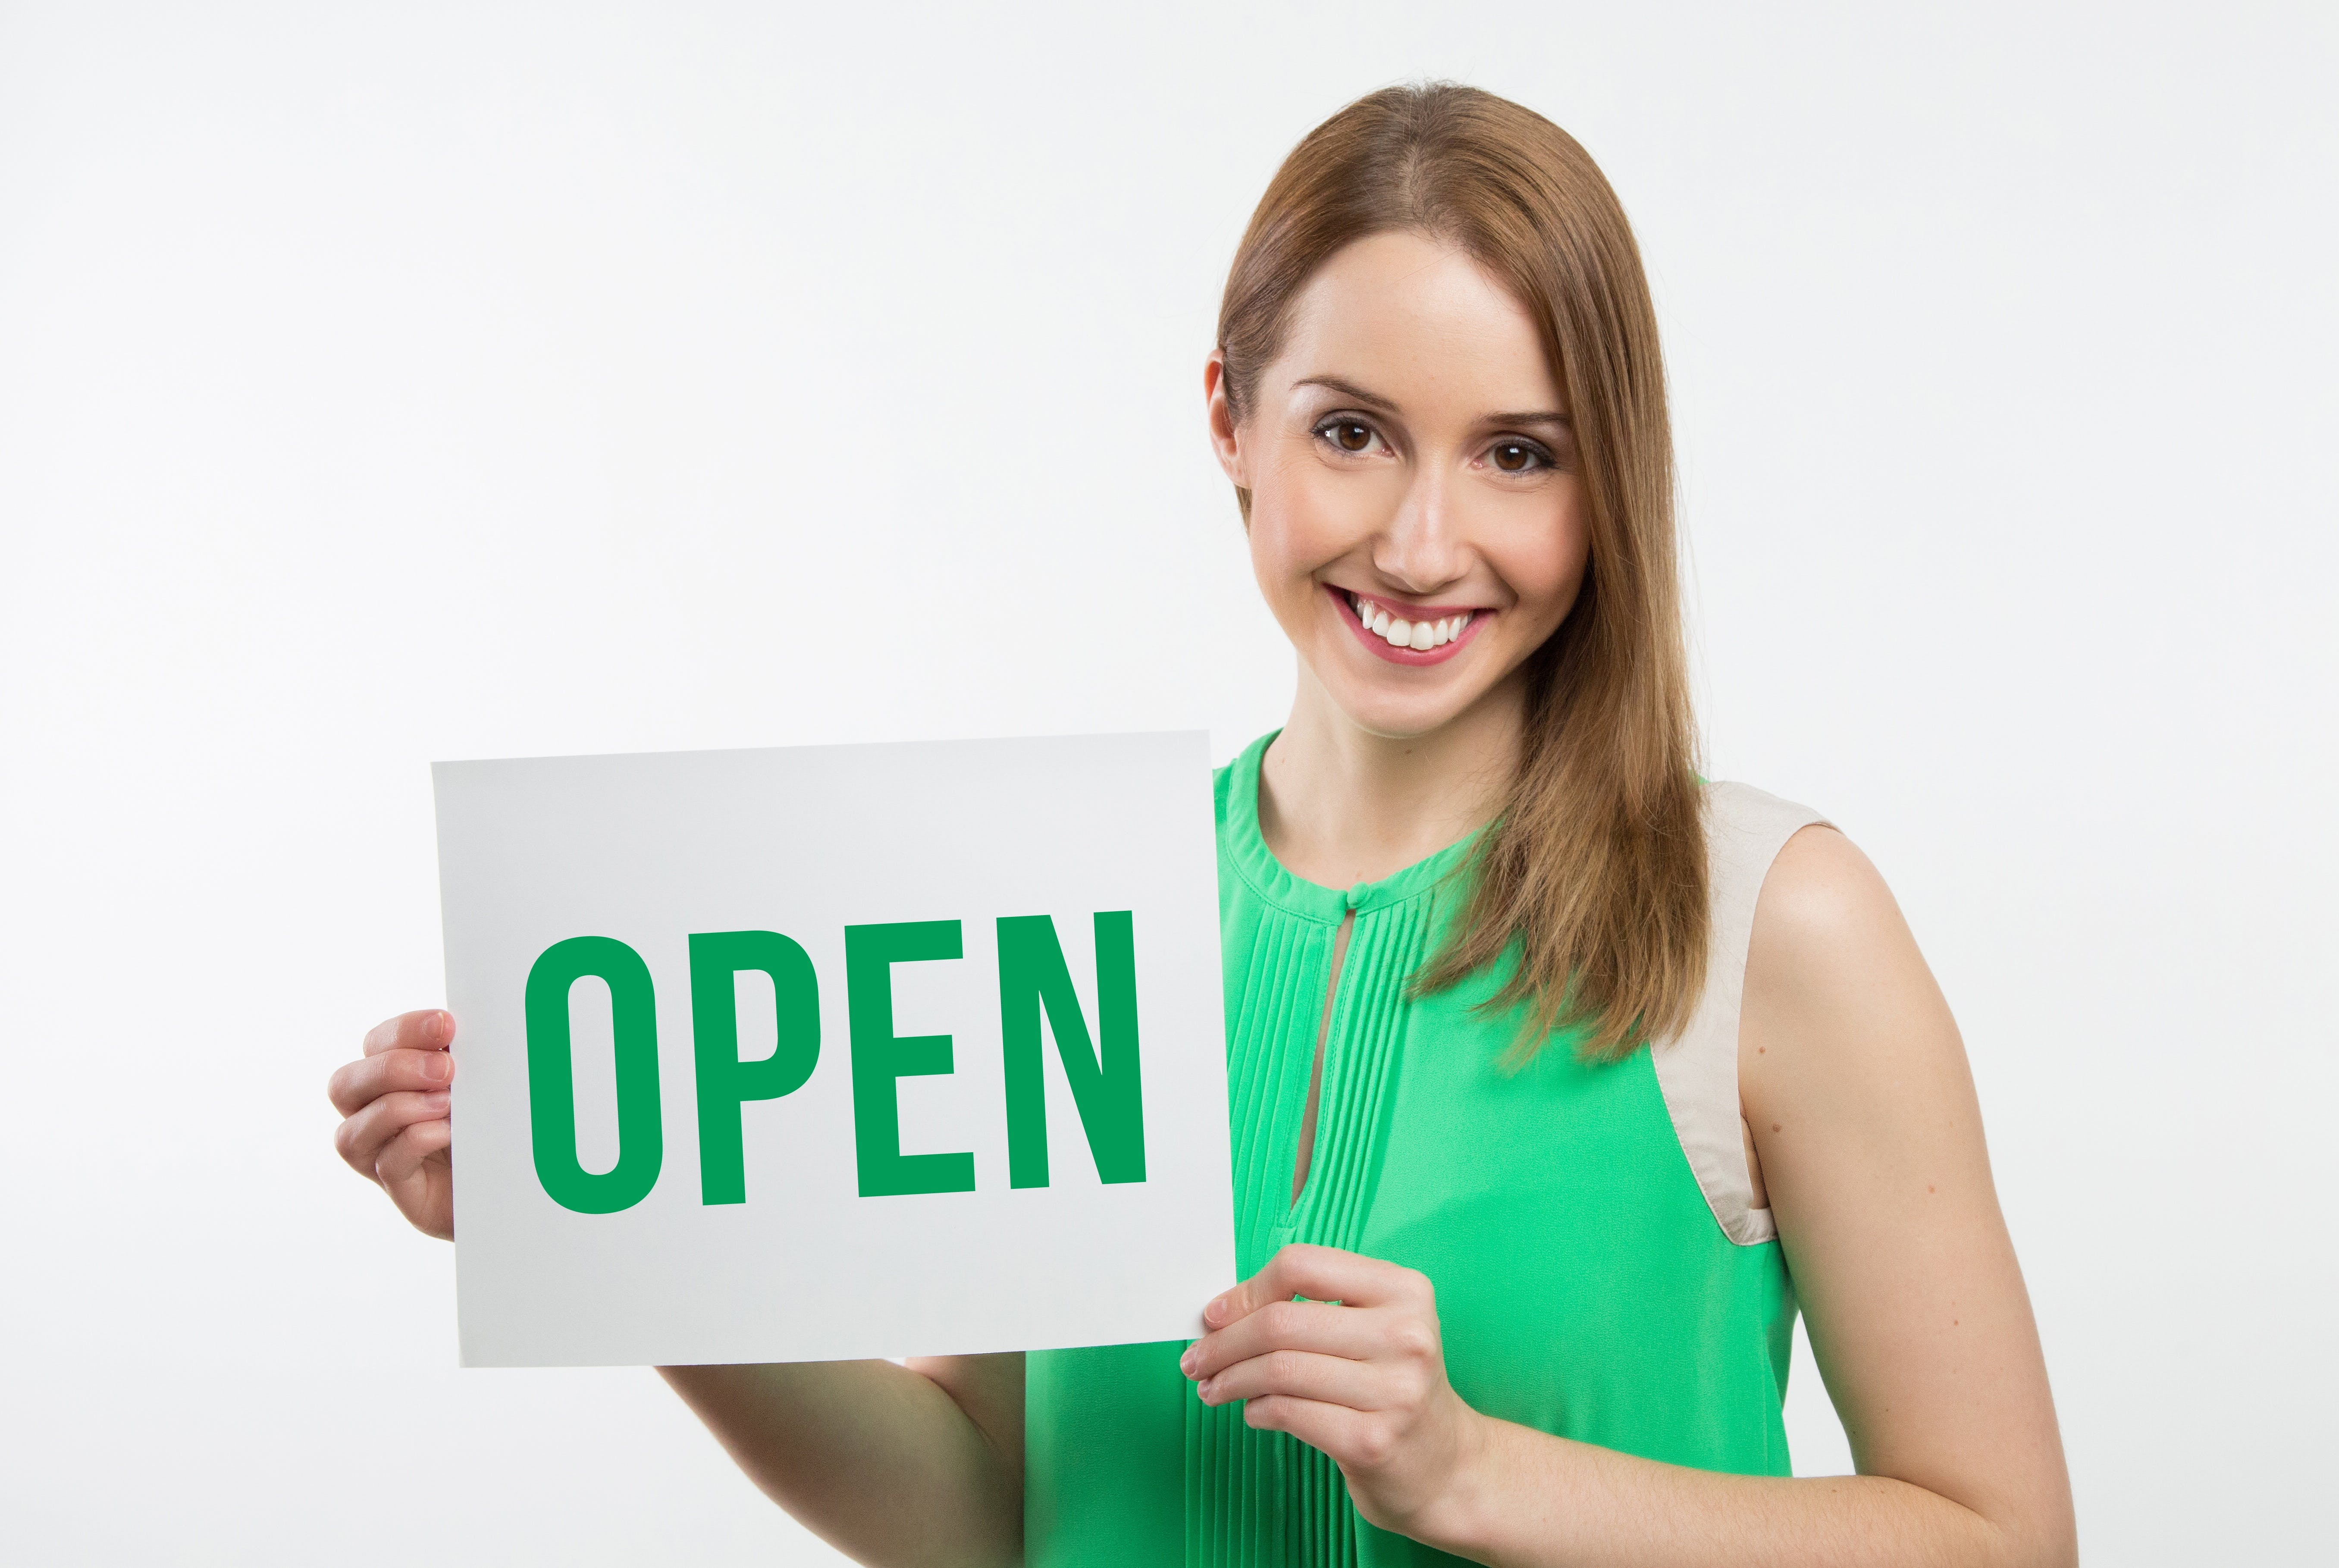 Woman Holding Open Signage